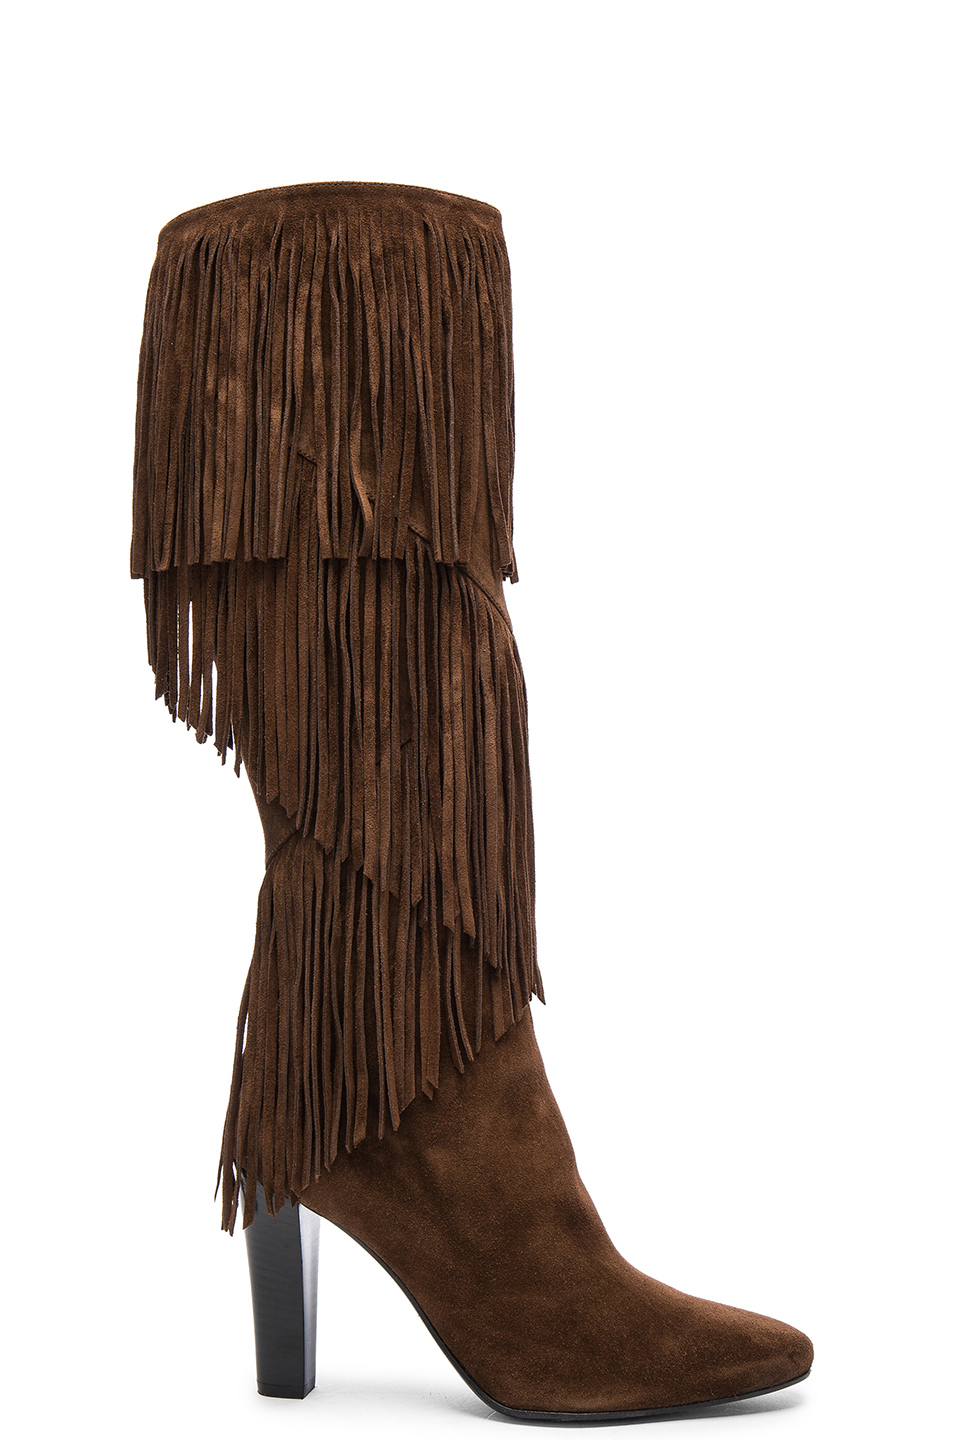 Suede Lily Fringe Boots